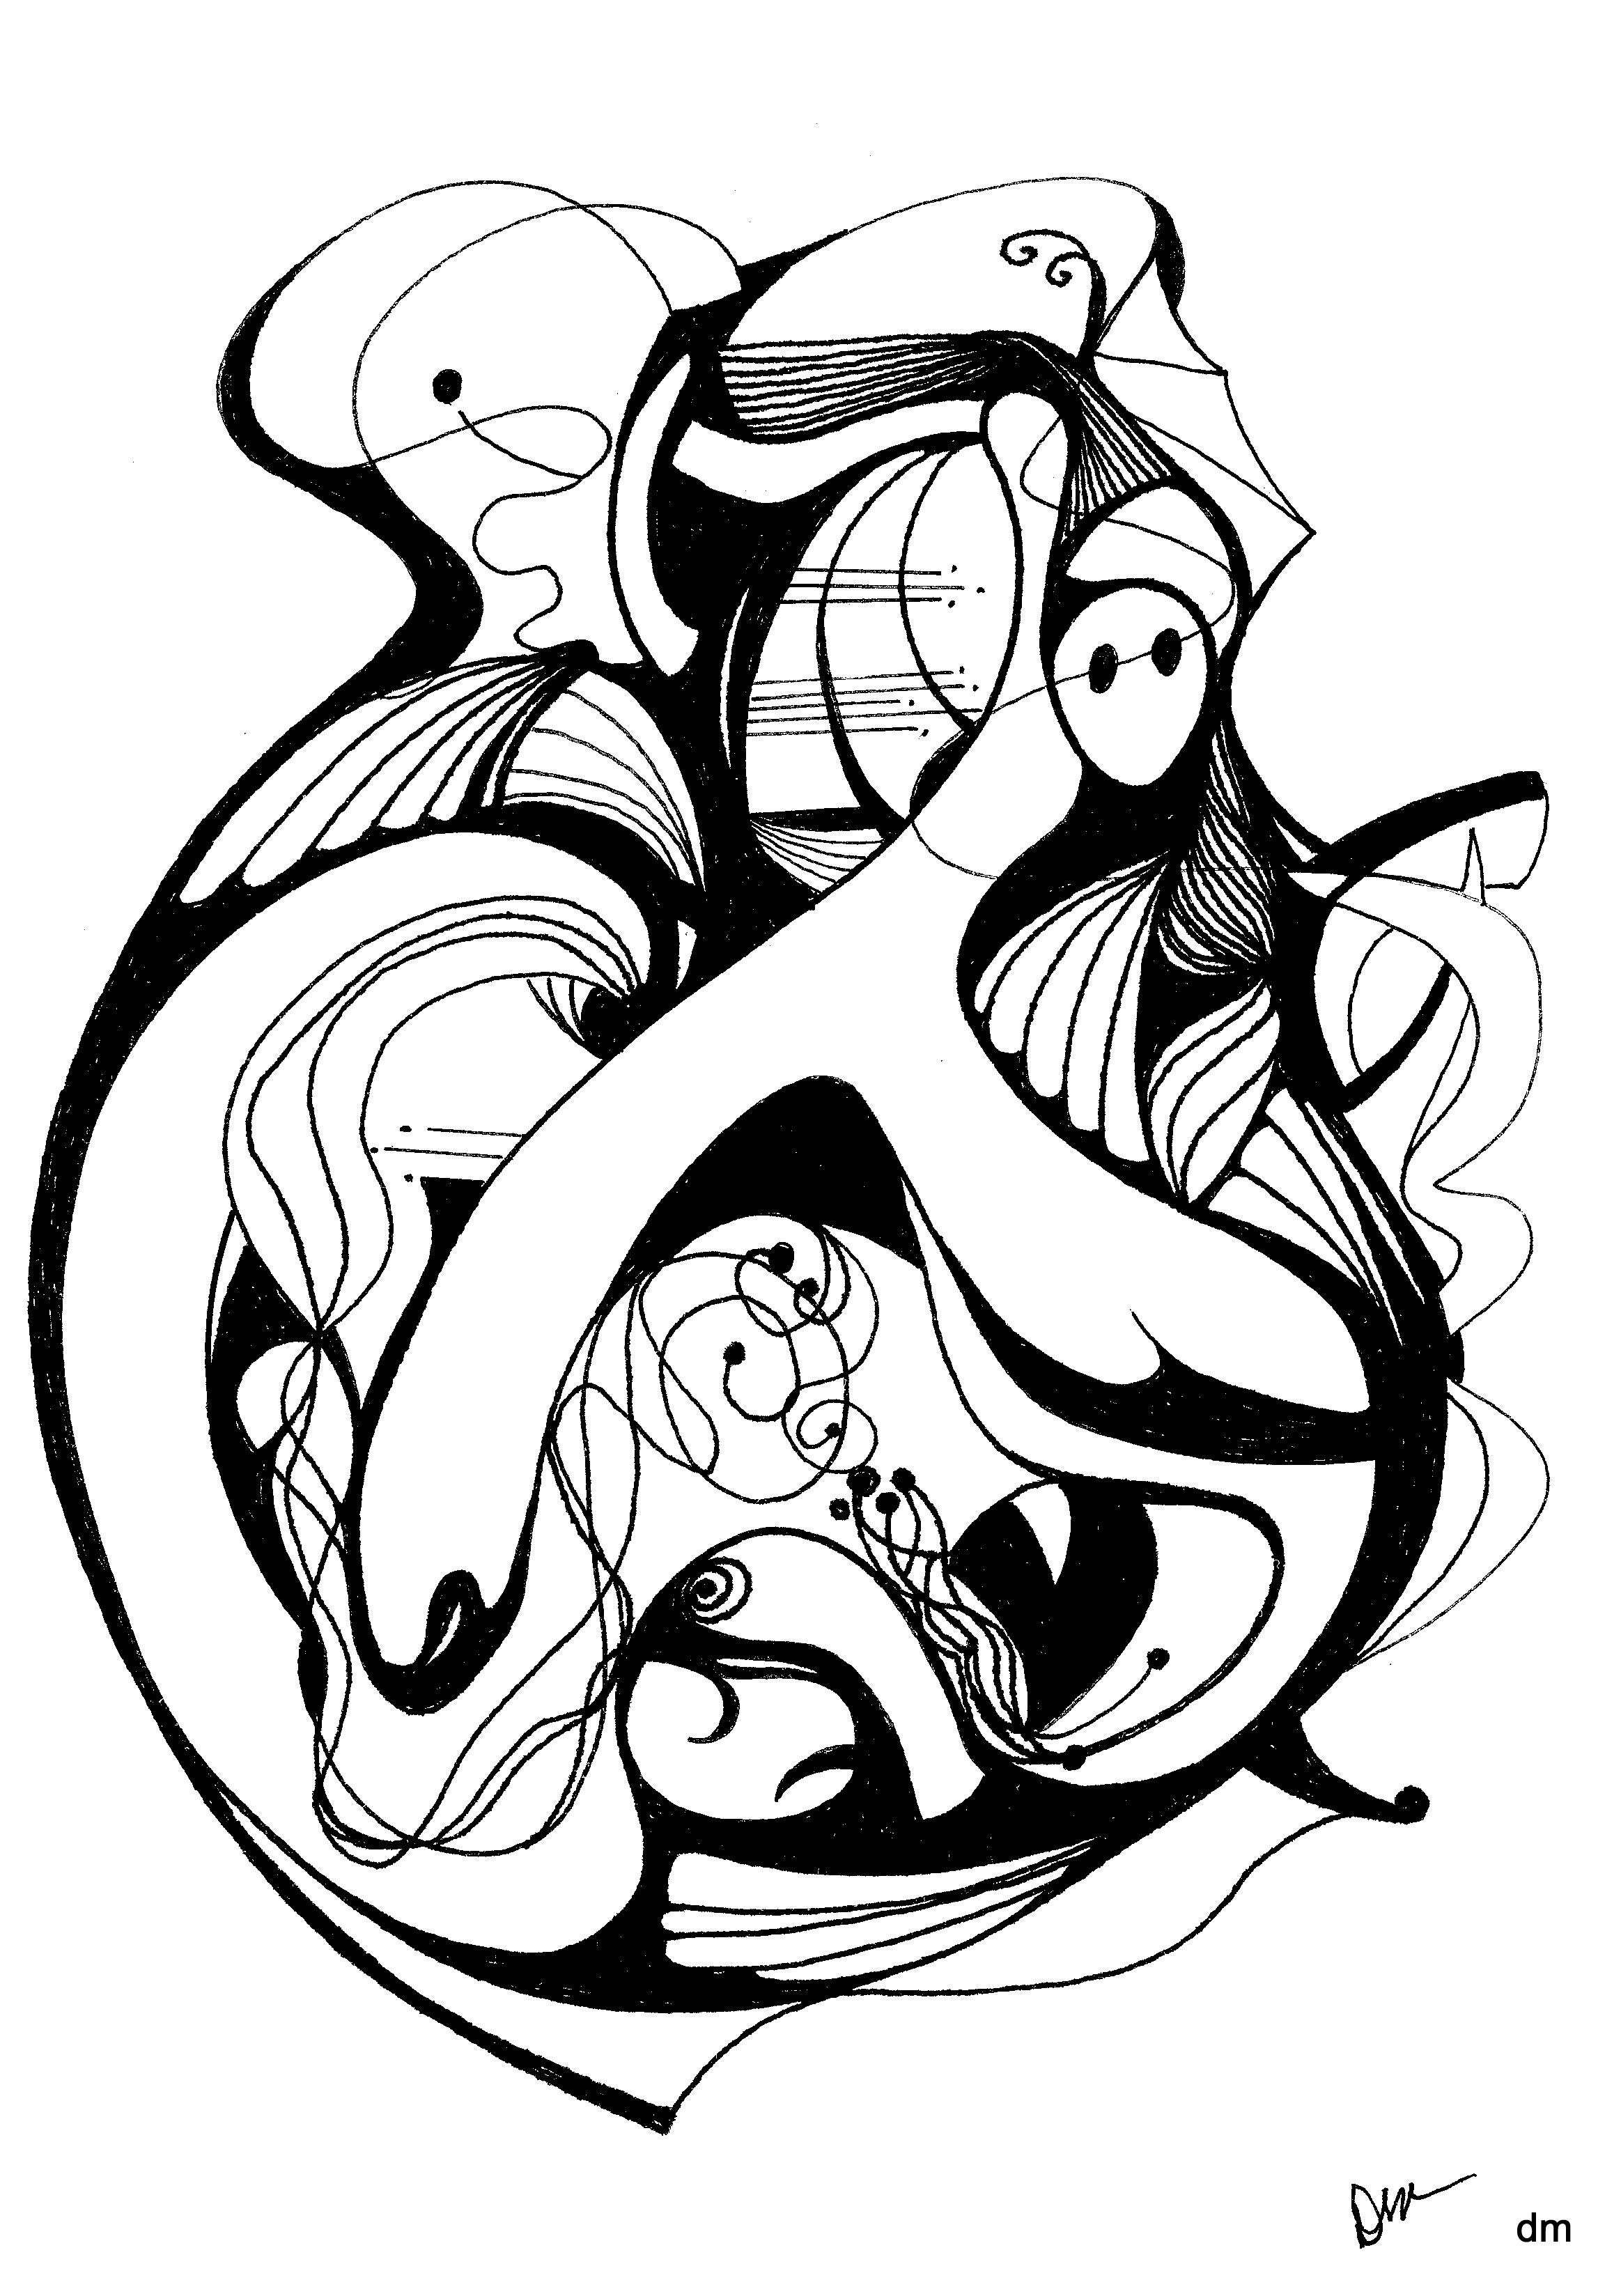 Pen ink abstract drawings